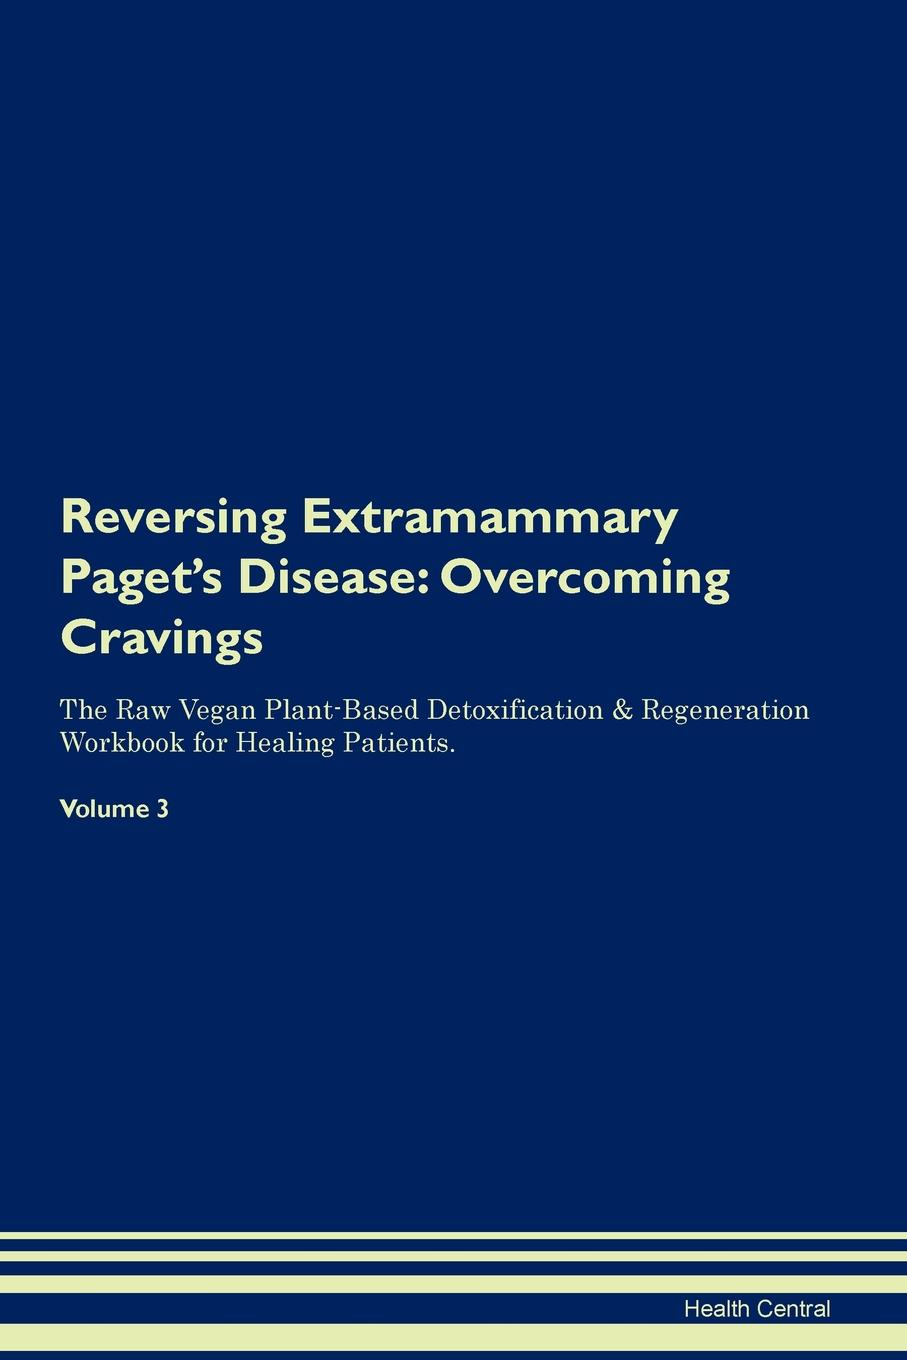 Фото - Health Central Reversing Extramammary Paget's Disease. Overcoming Cravings The Raw Vegan Plant-Based Detoxification & Regeneration Workbook for Healing Patients. Volume 3 health central reversing extramammary paget s disease overcoming cravings the raw vegan plant based detoxification regeneration workbook for healing patients volume 3